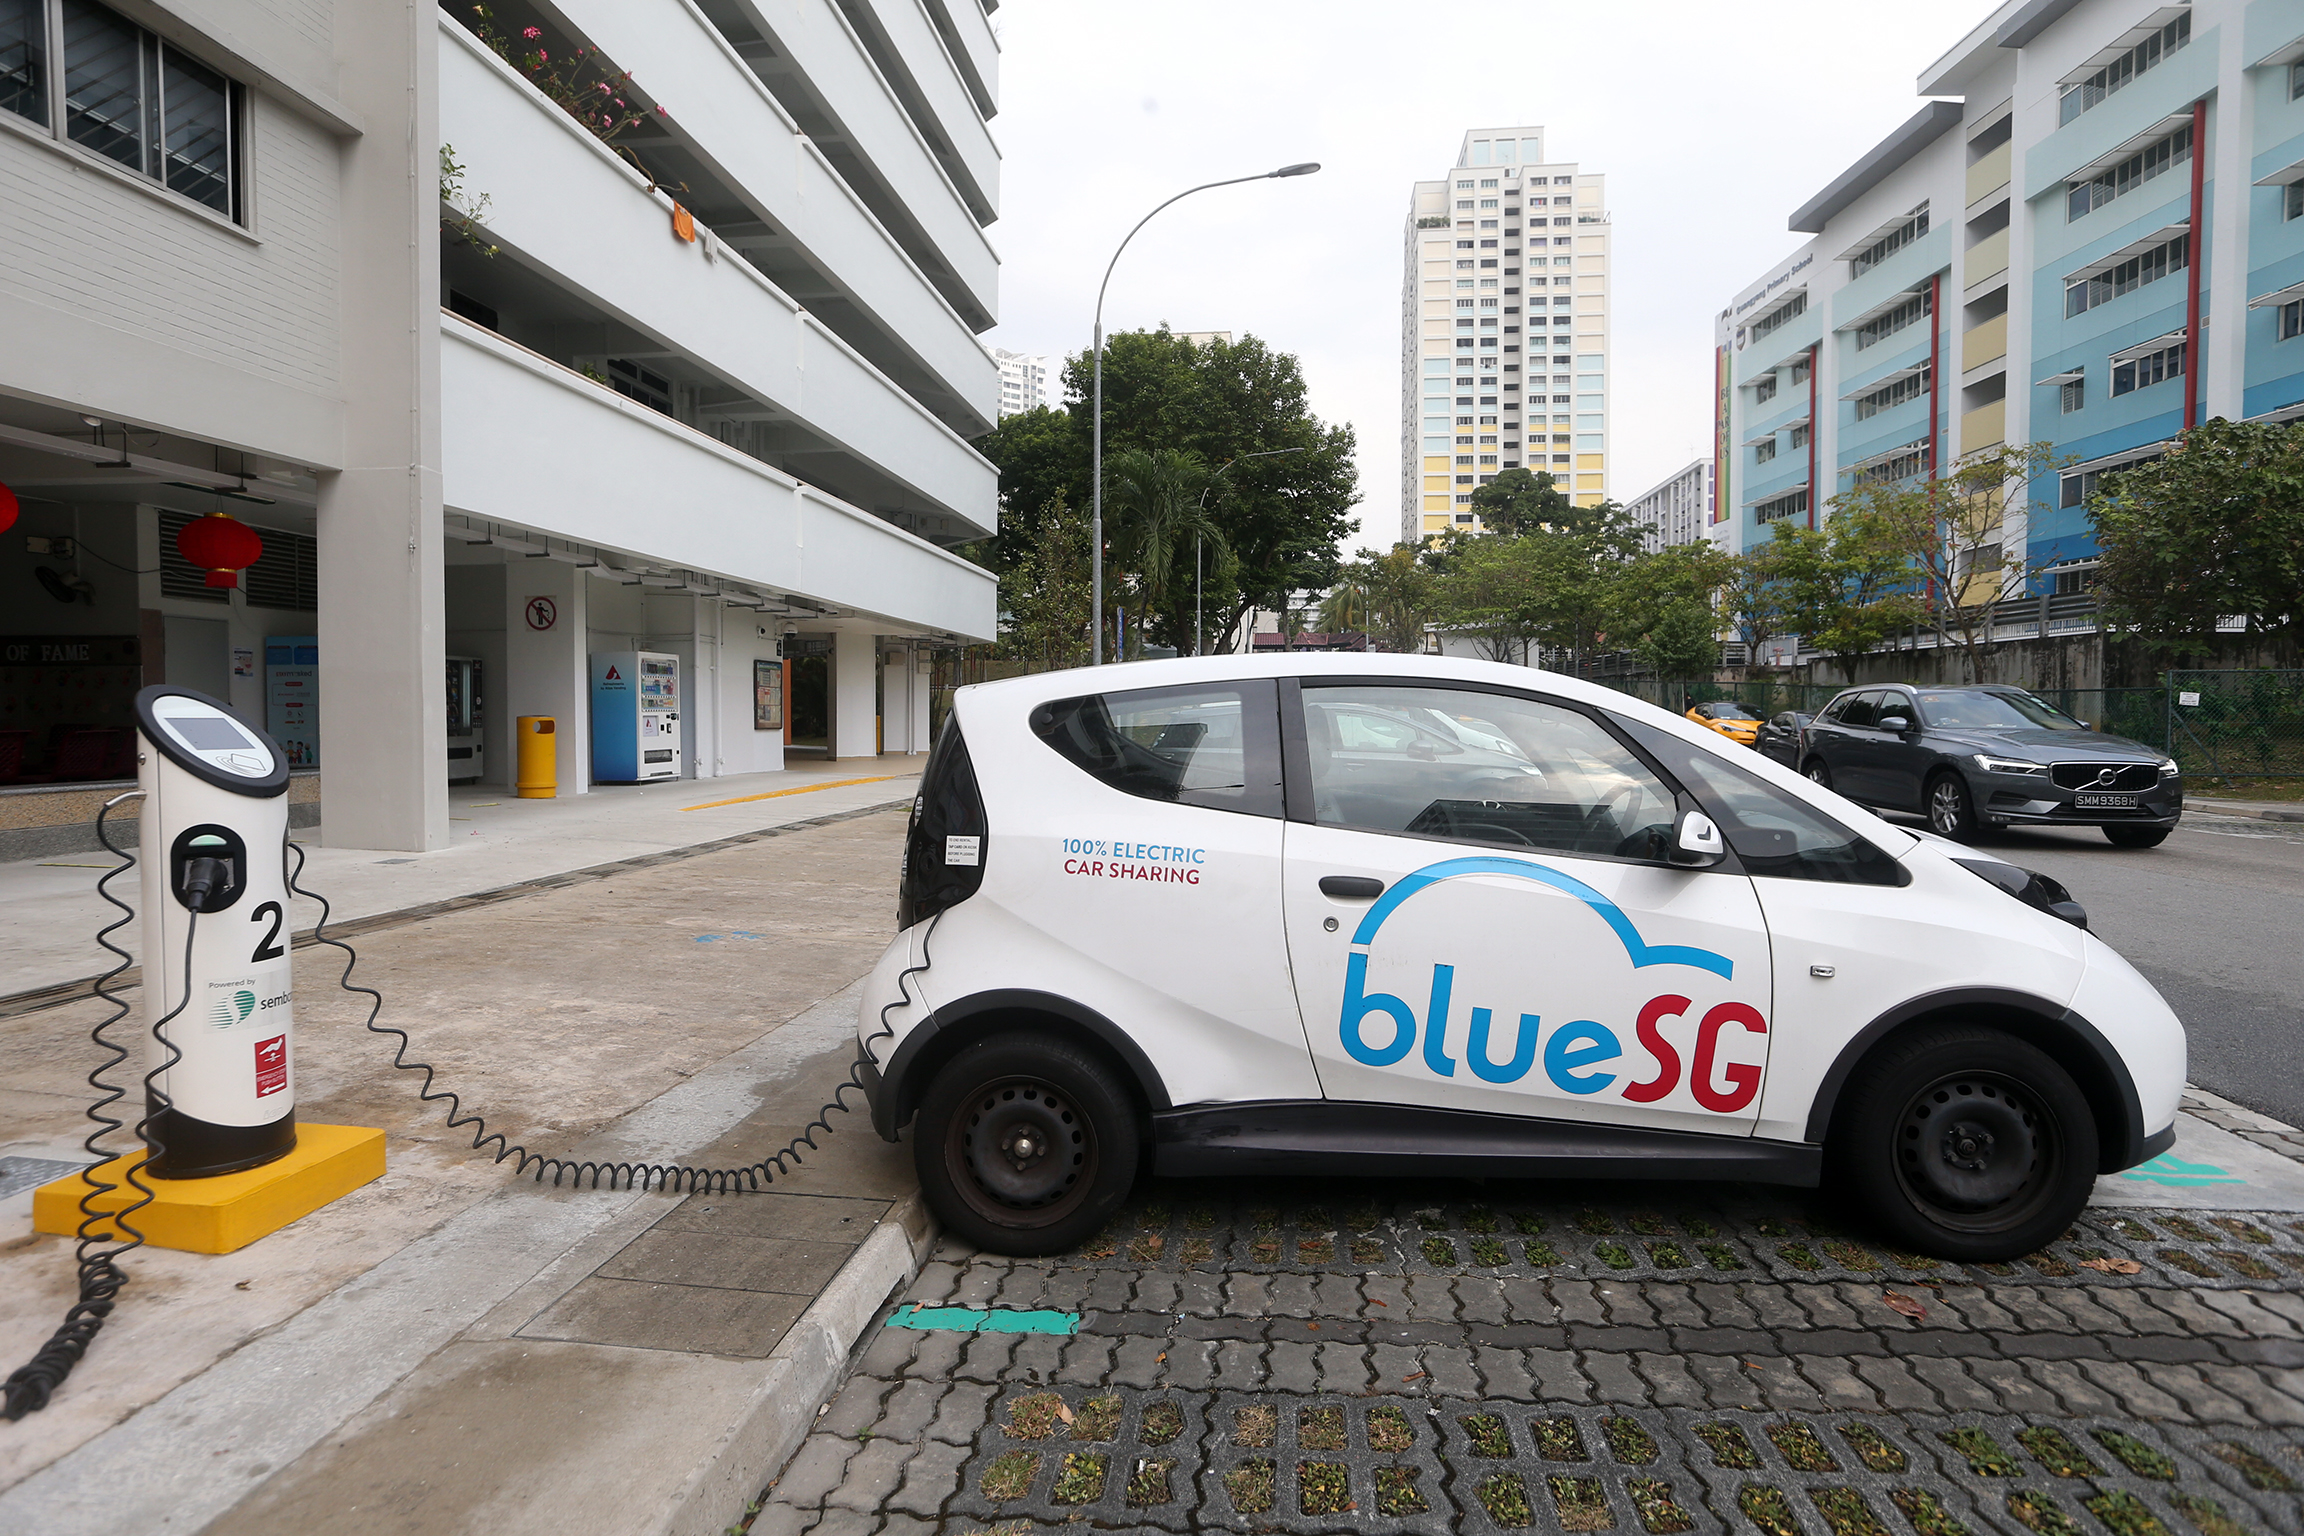 The Government will be collecting data, such as charging durations and state-of-charge at the start and end of each session, according to documents of its first tender to build more than 600 EV charging points at over 200 public car parks by the third qua